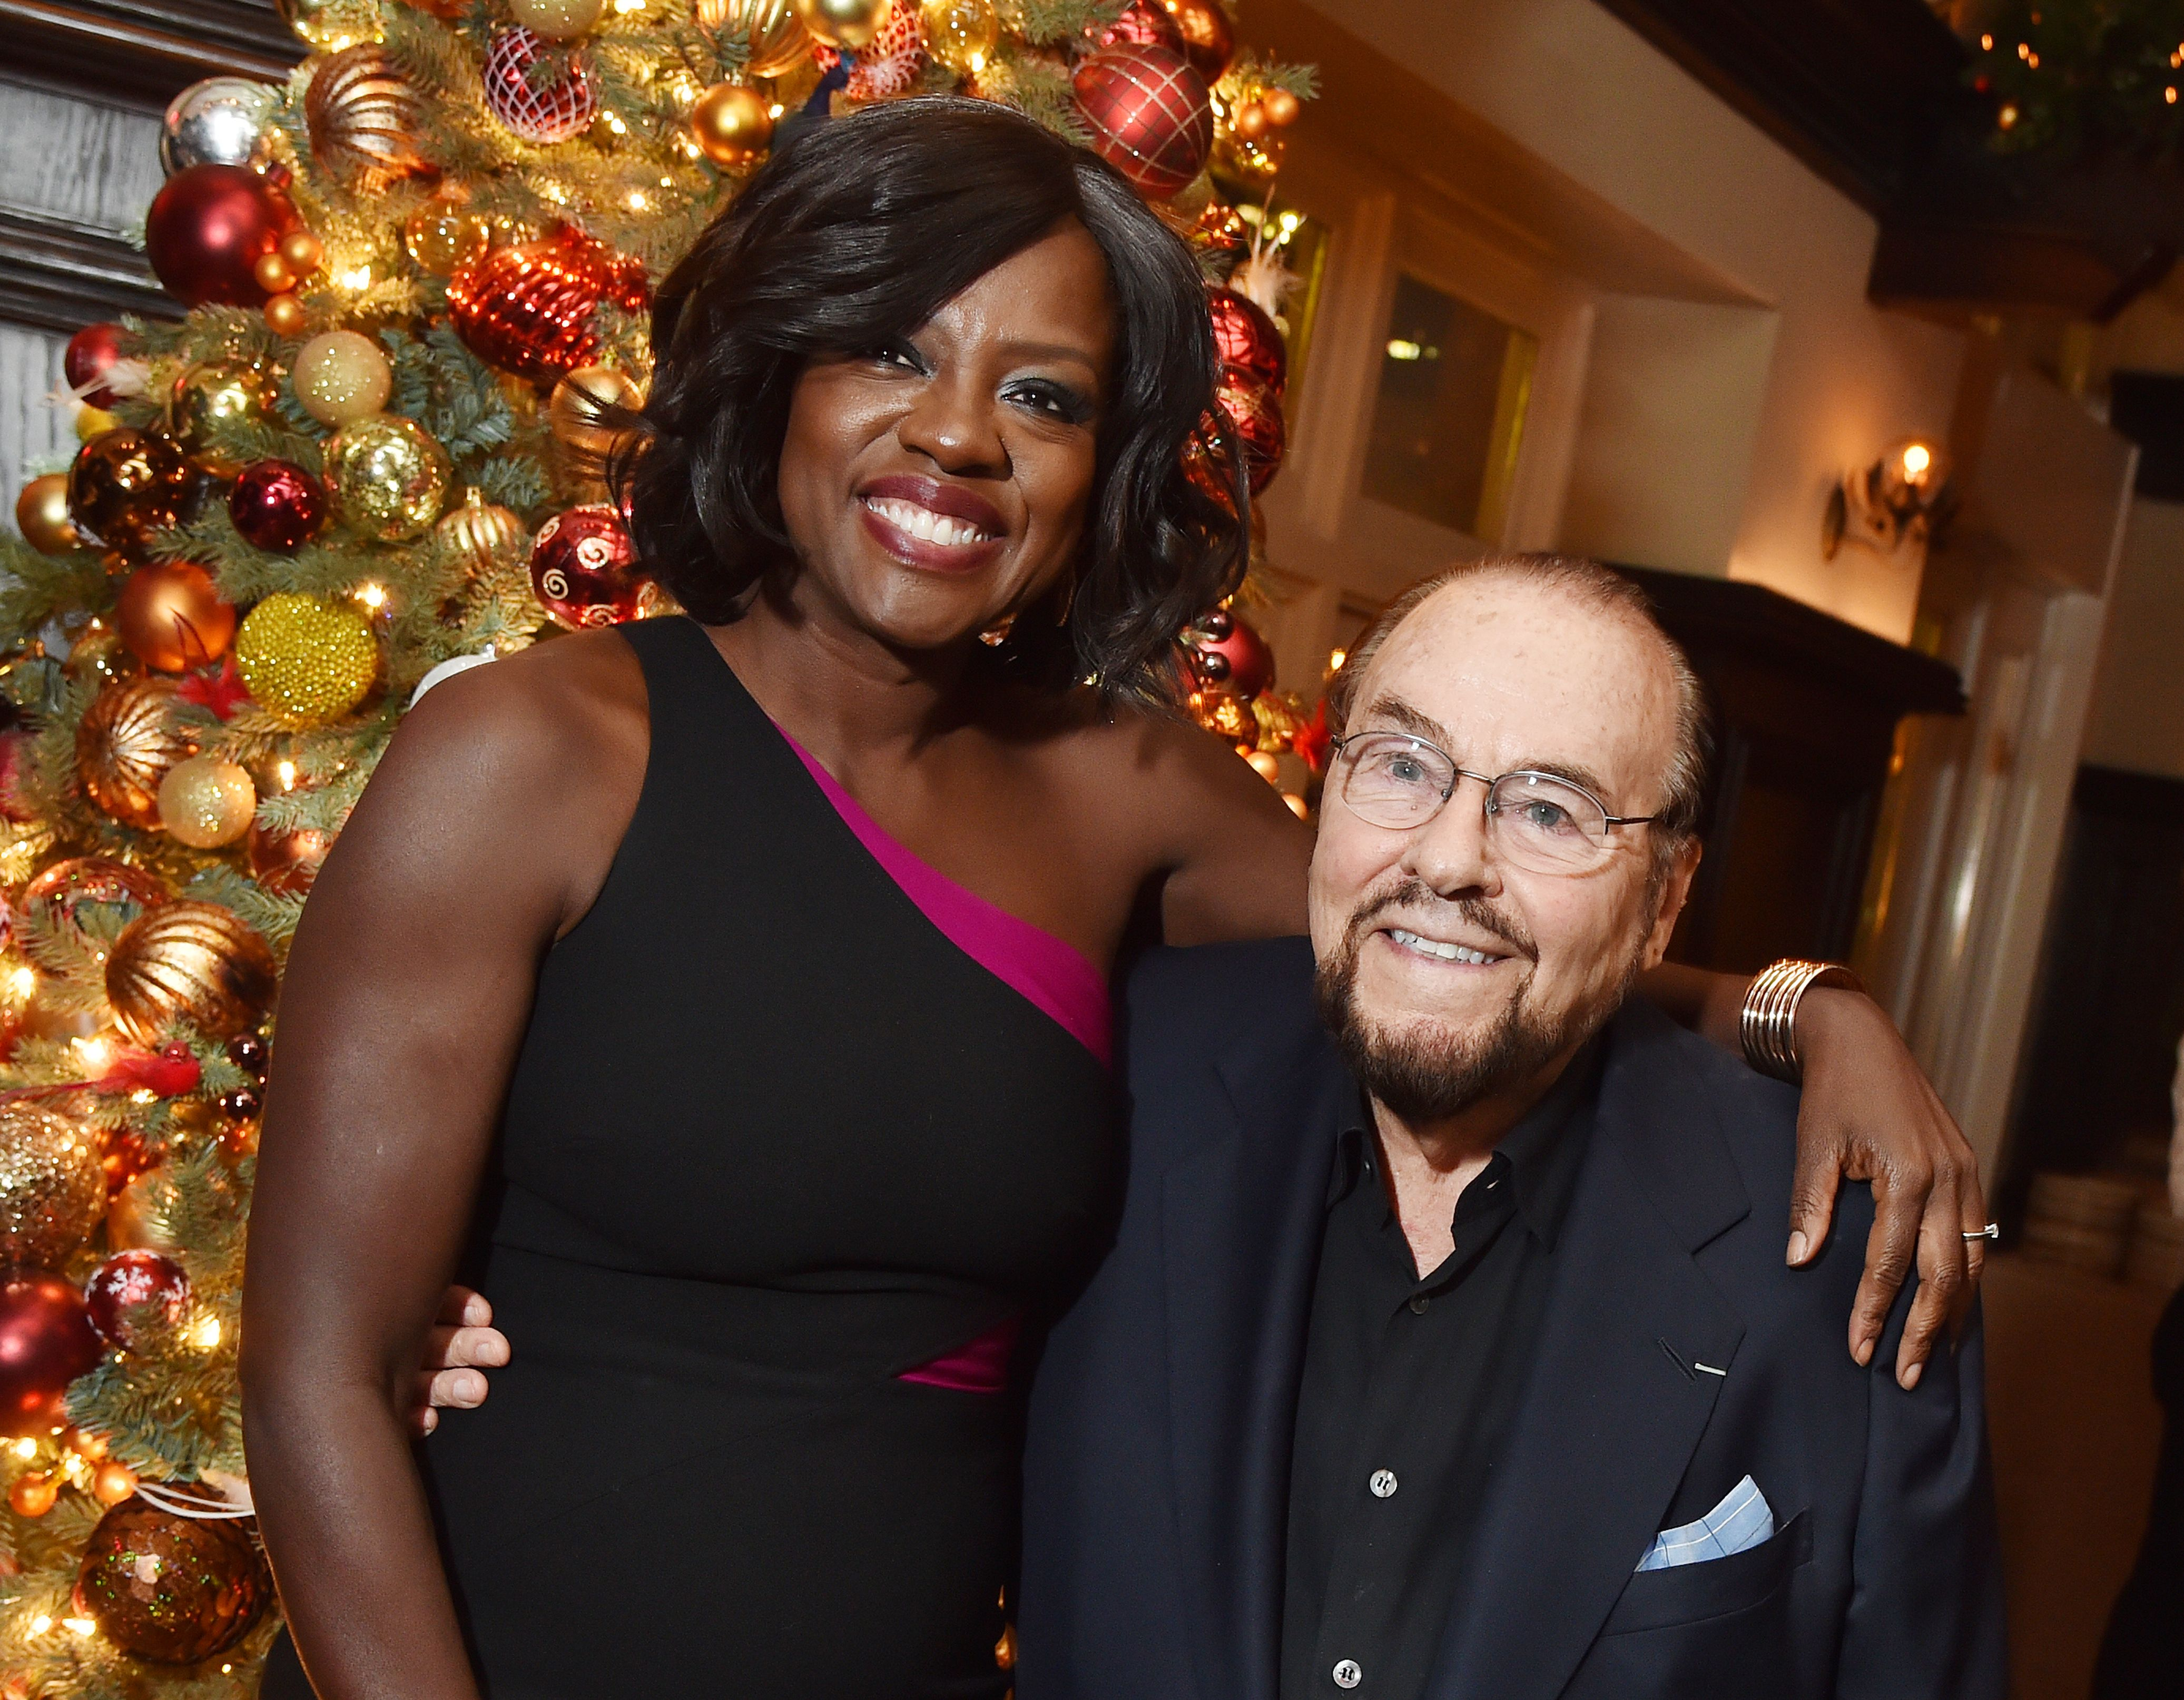 Viola Davis and James Lipton'Fences' film screening, After Party, New York, USA - 19 Dec 2016